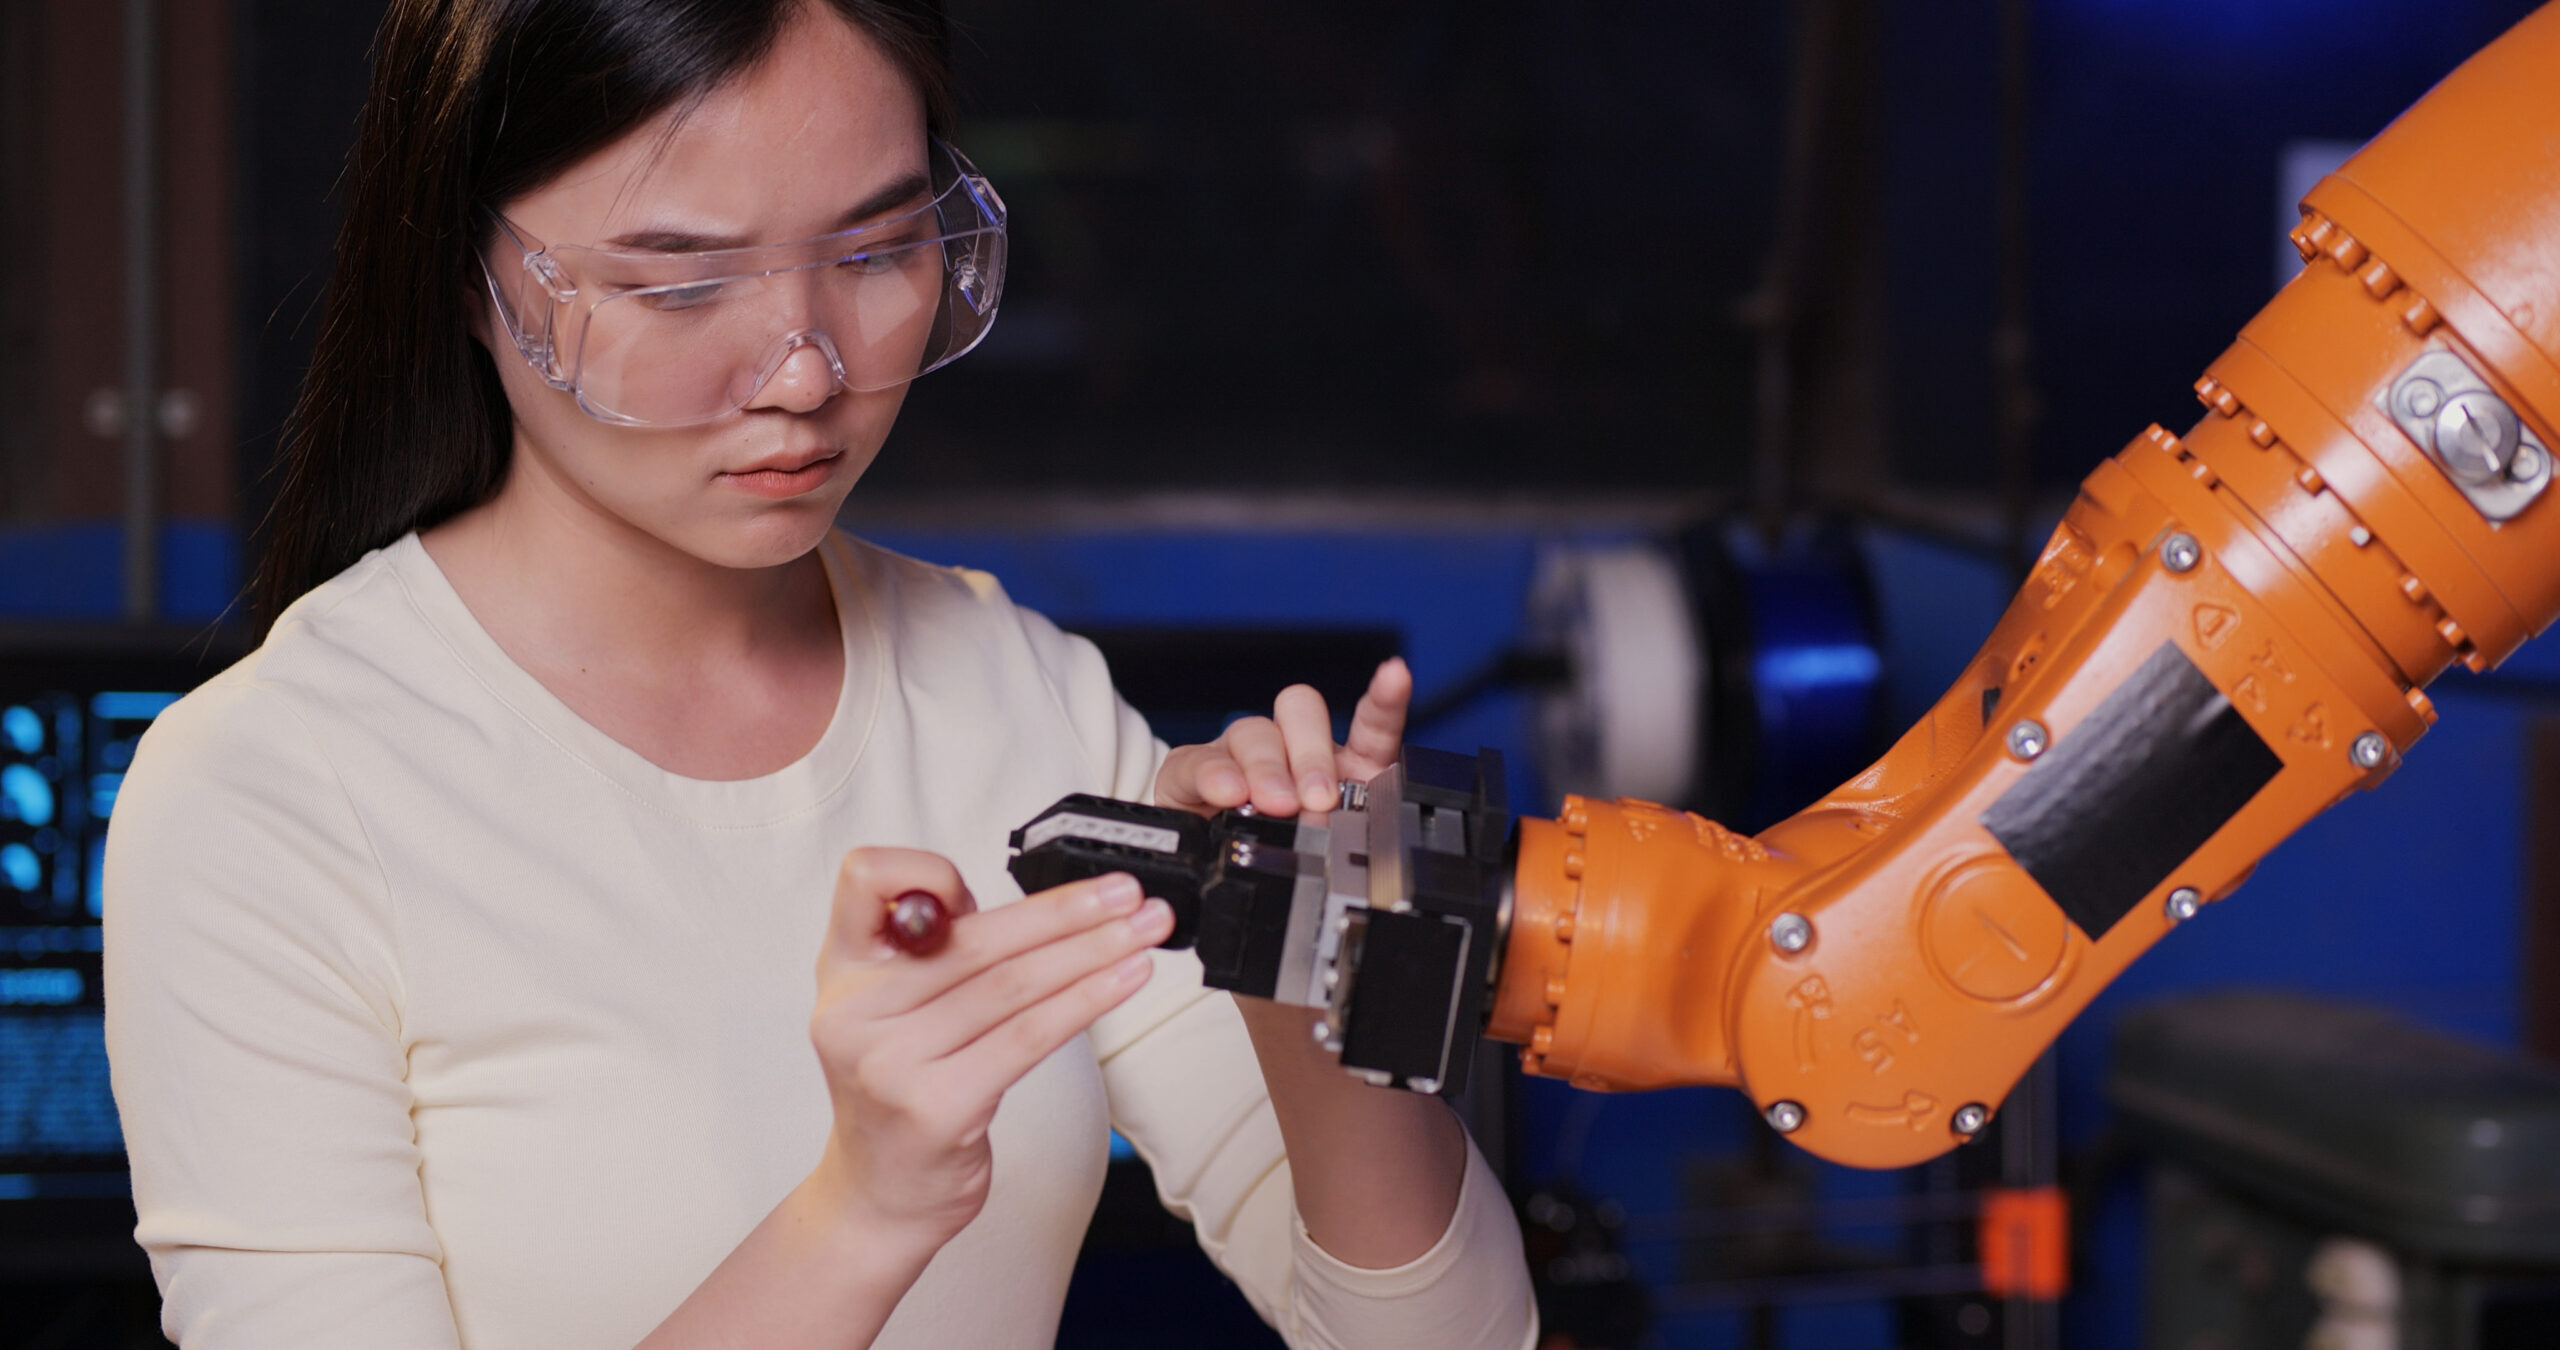 woman working in the high tech industry